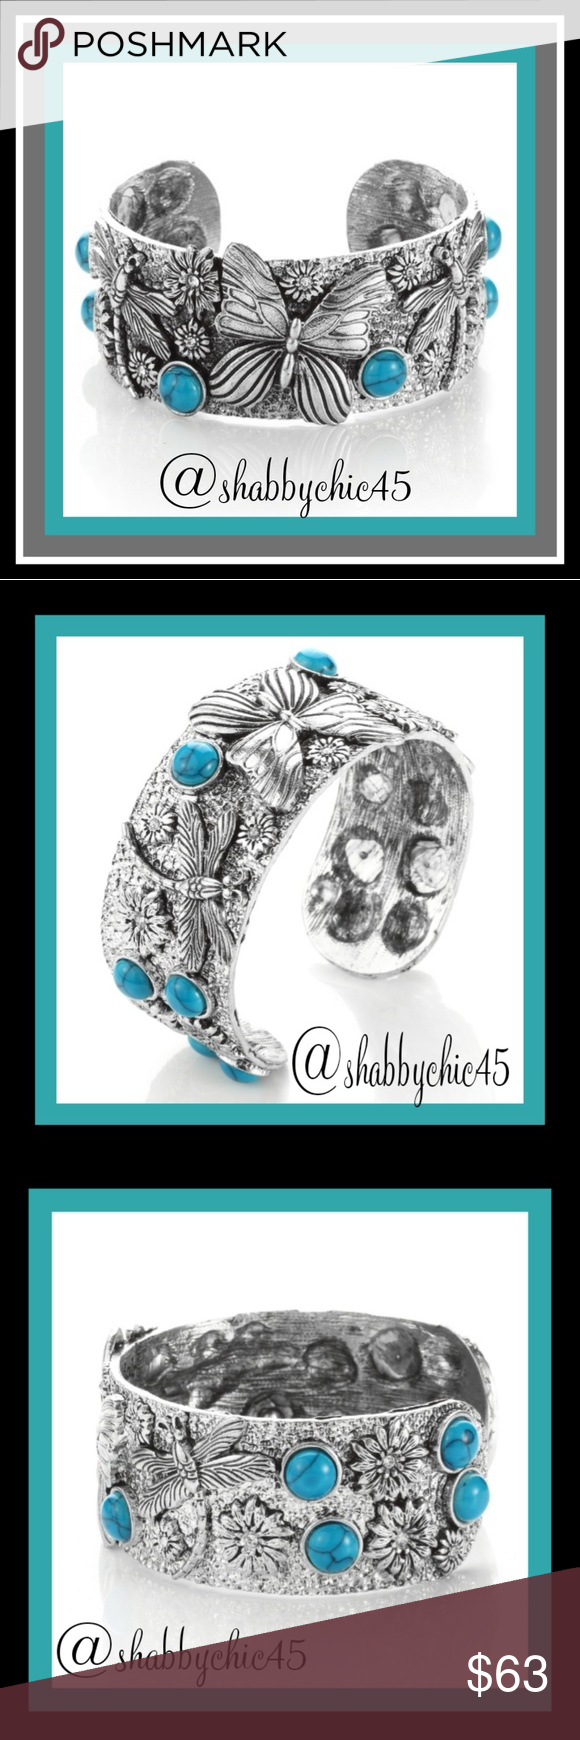 Southwestern Turquoise Butterfly Cuff Bracelet This unique cuff bracelet is one of a kind which features carved butterflie,  dragonflies, and flower settings accented with turquoise hue beads setting around the bracelet.   Diameter is 6.2 cm and outer diameter is 6.8 cm.  Weight is 95 grams  Smoke free home . Open to reasonable offers unless price is marked as firm. Boutique  Jewelry Bracelets